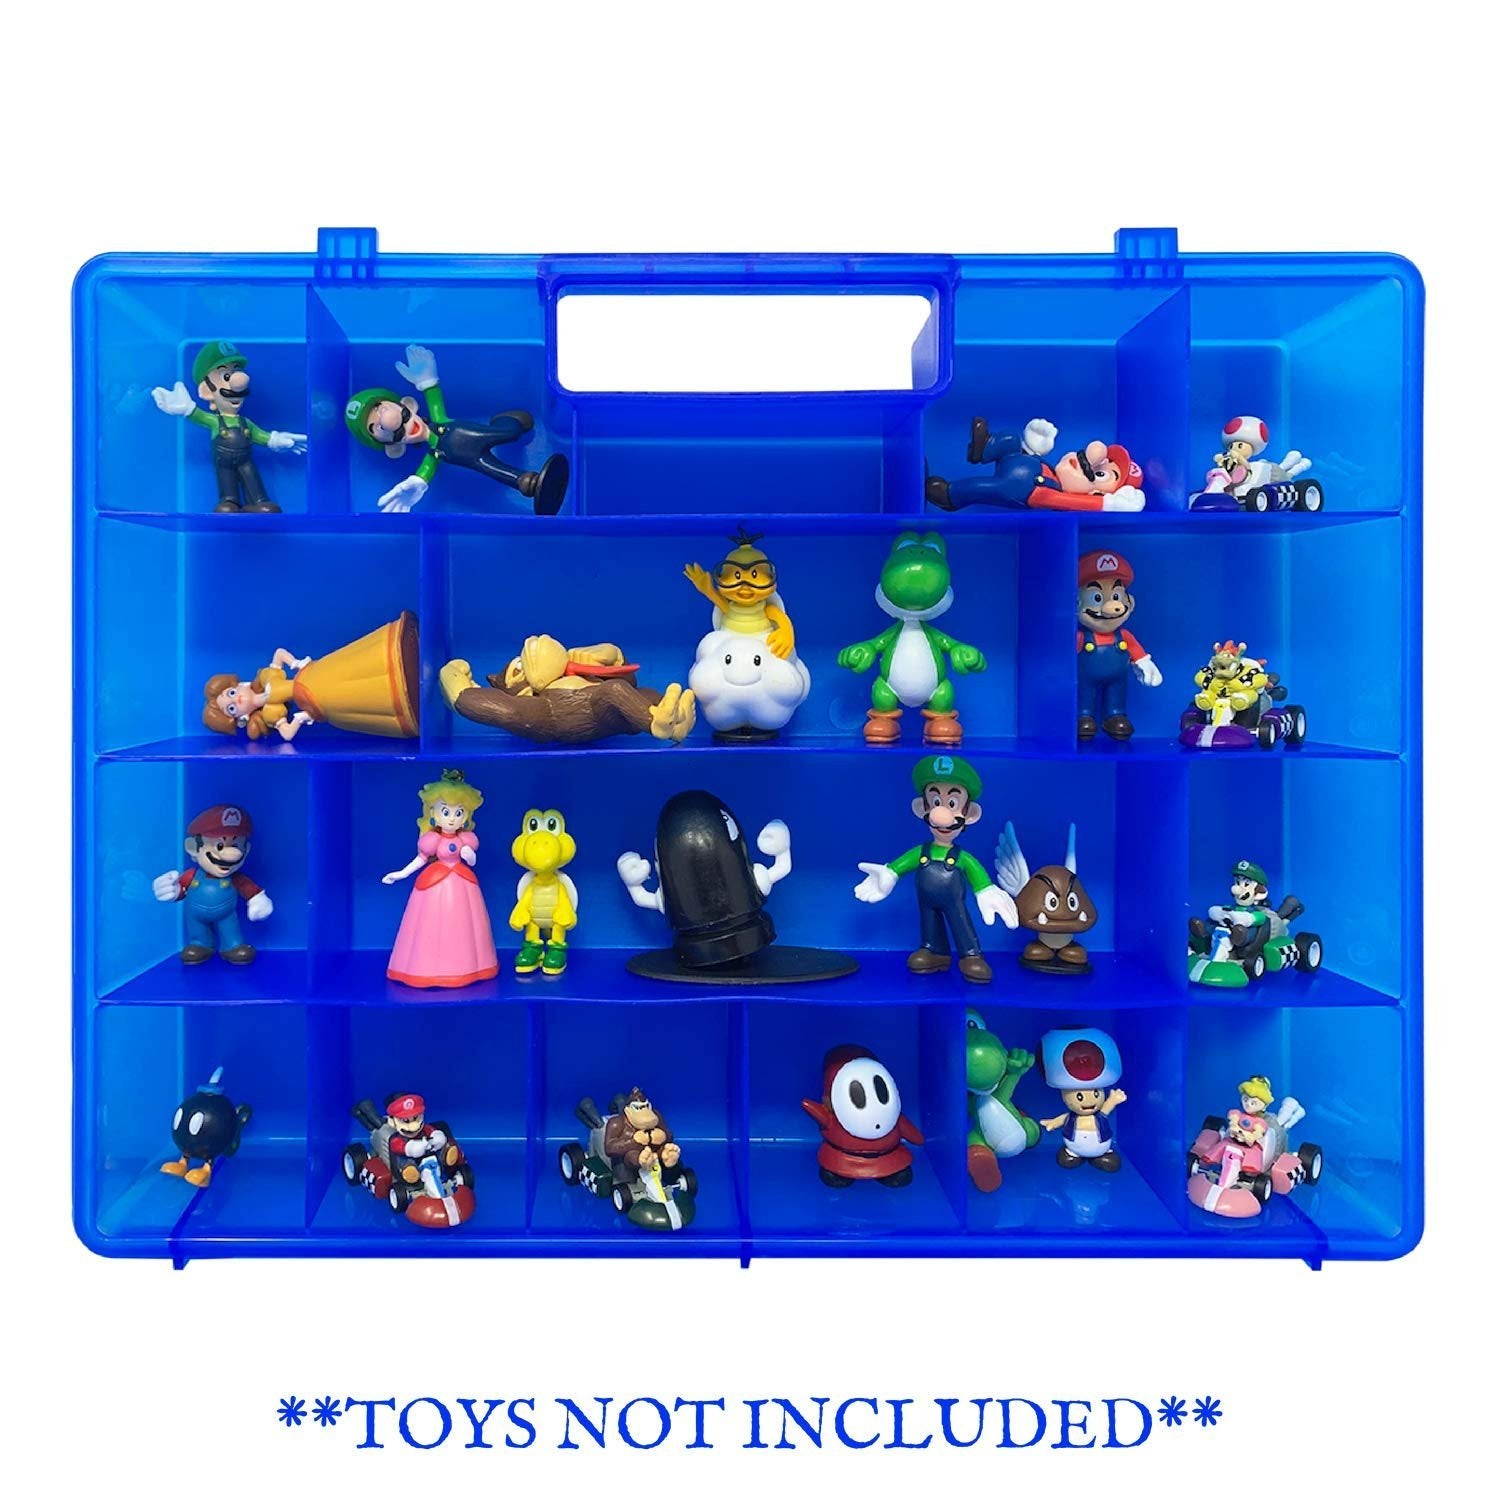 Life Made Better Toy Action Figure Organizer Case, Compatible with Mario Bros Action Figures, Toys Accessories